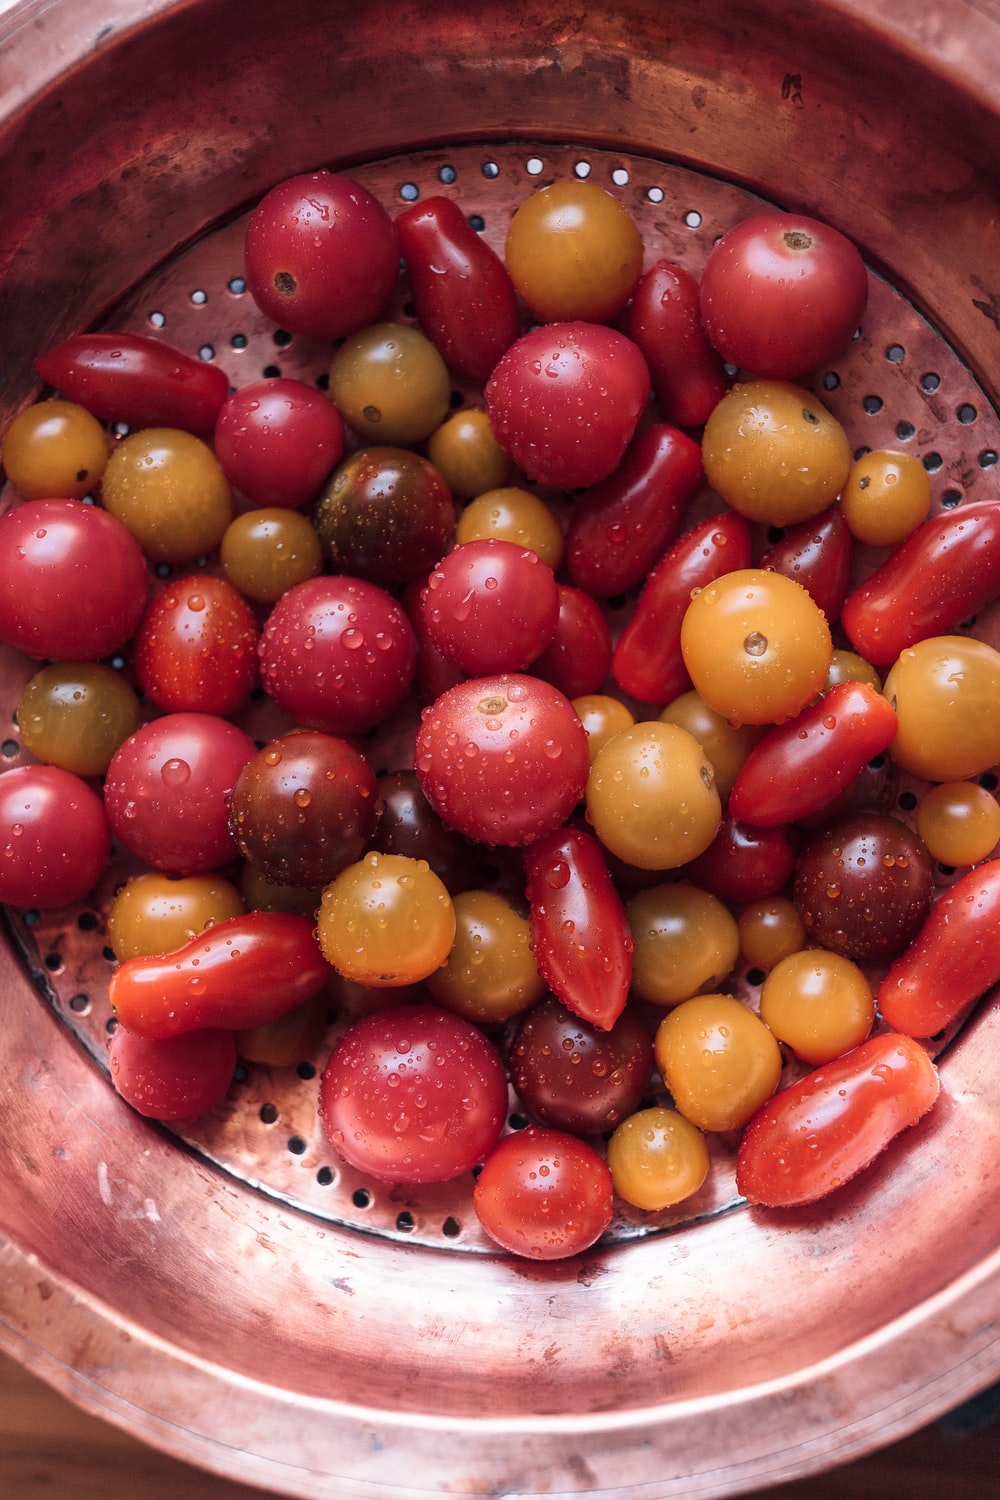 red and yellow round fruits on brown steel basket